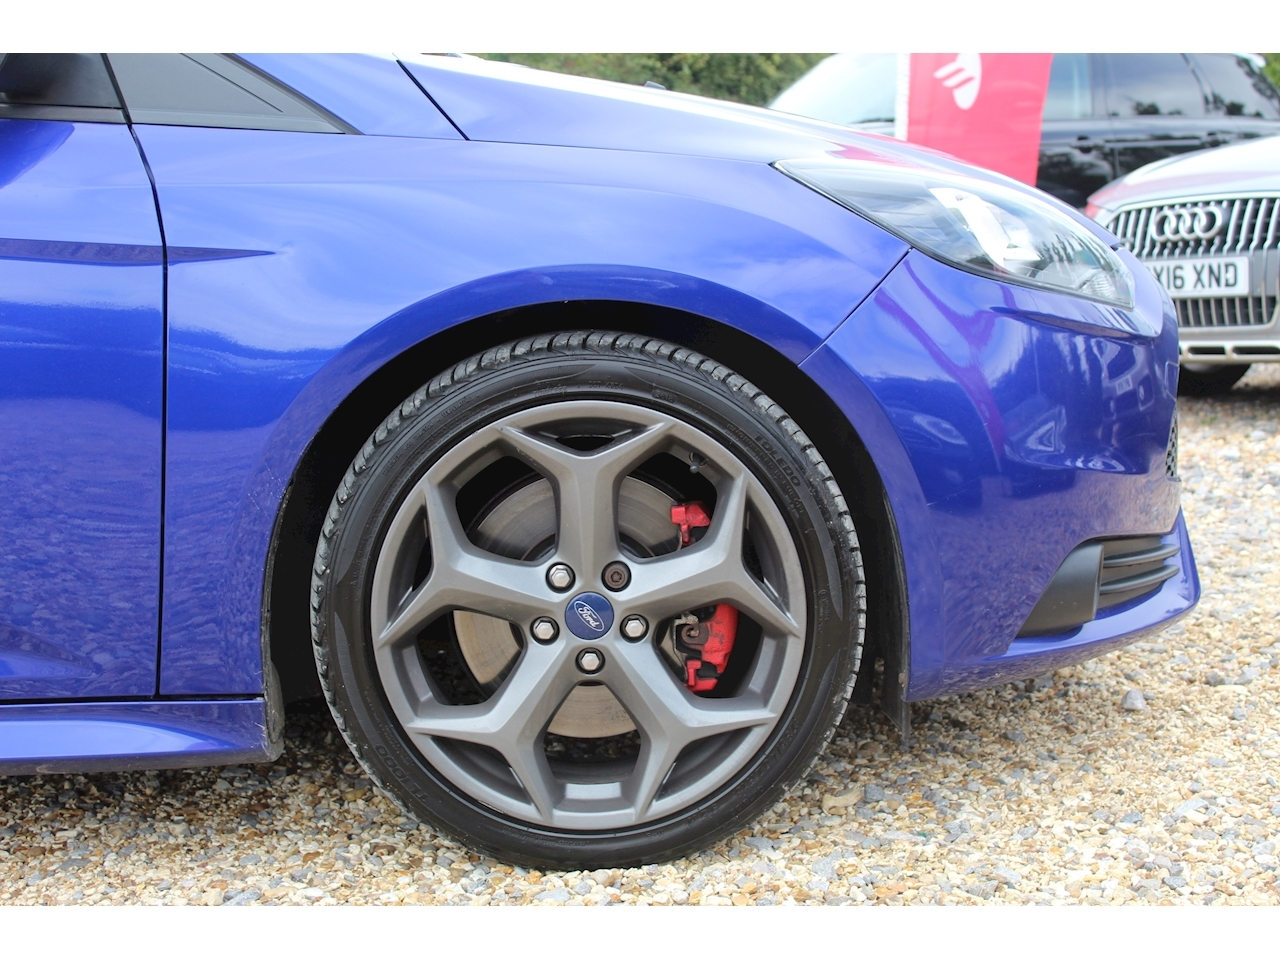 Ford Focus ST-2 Hatchback 2.0 Manual Petrol